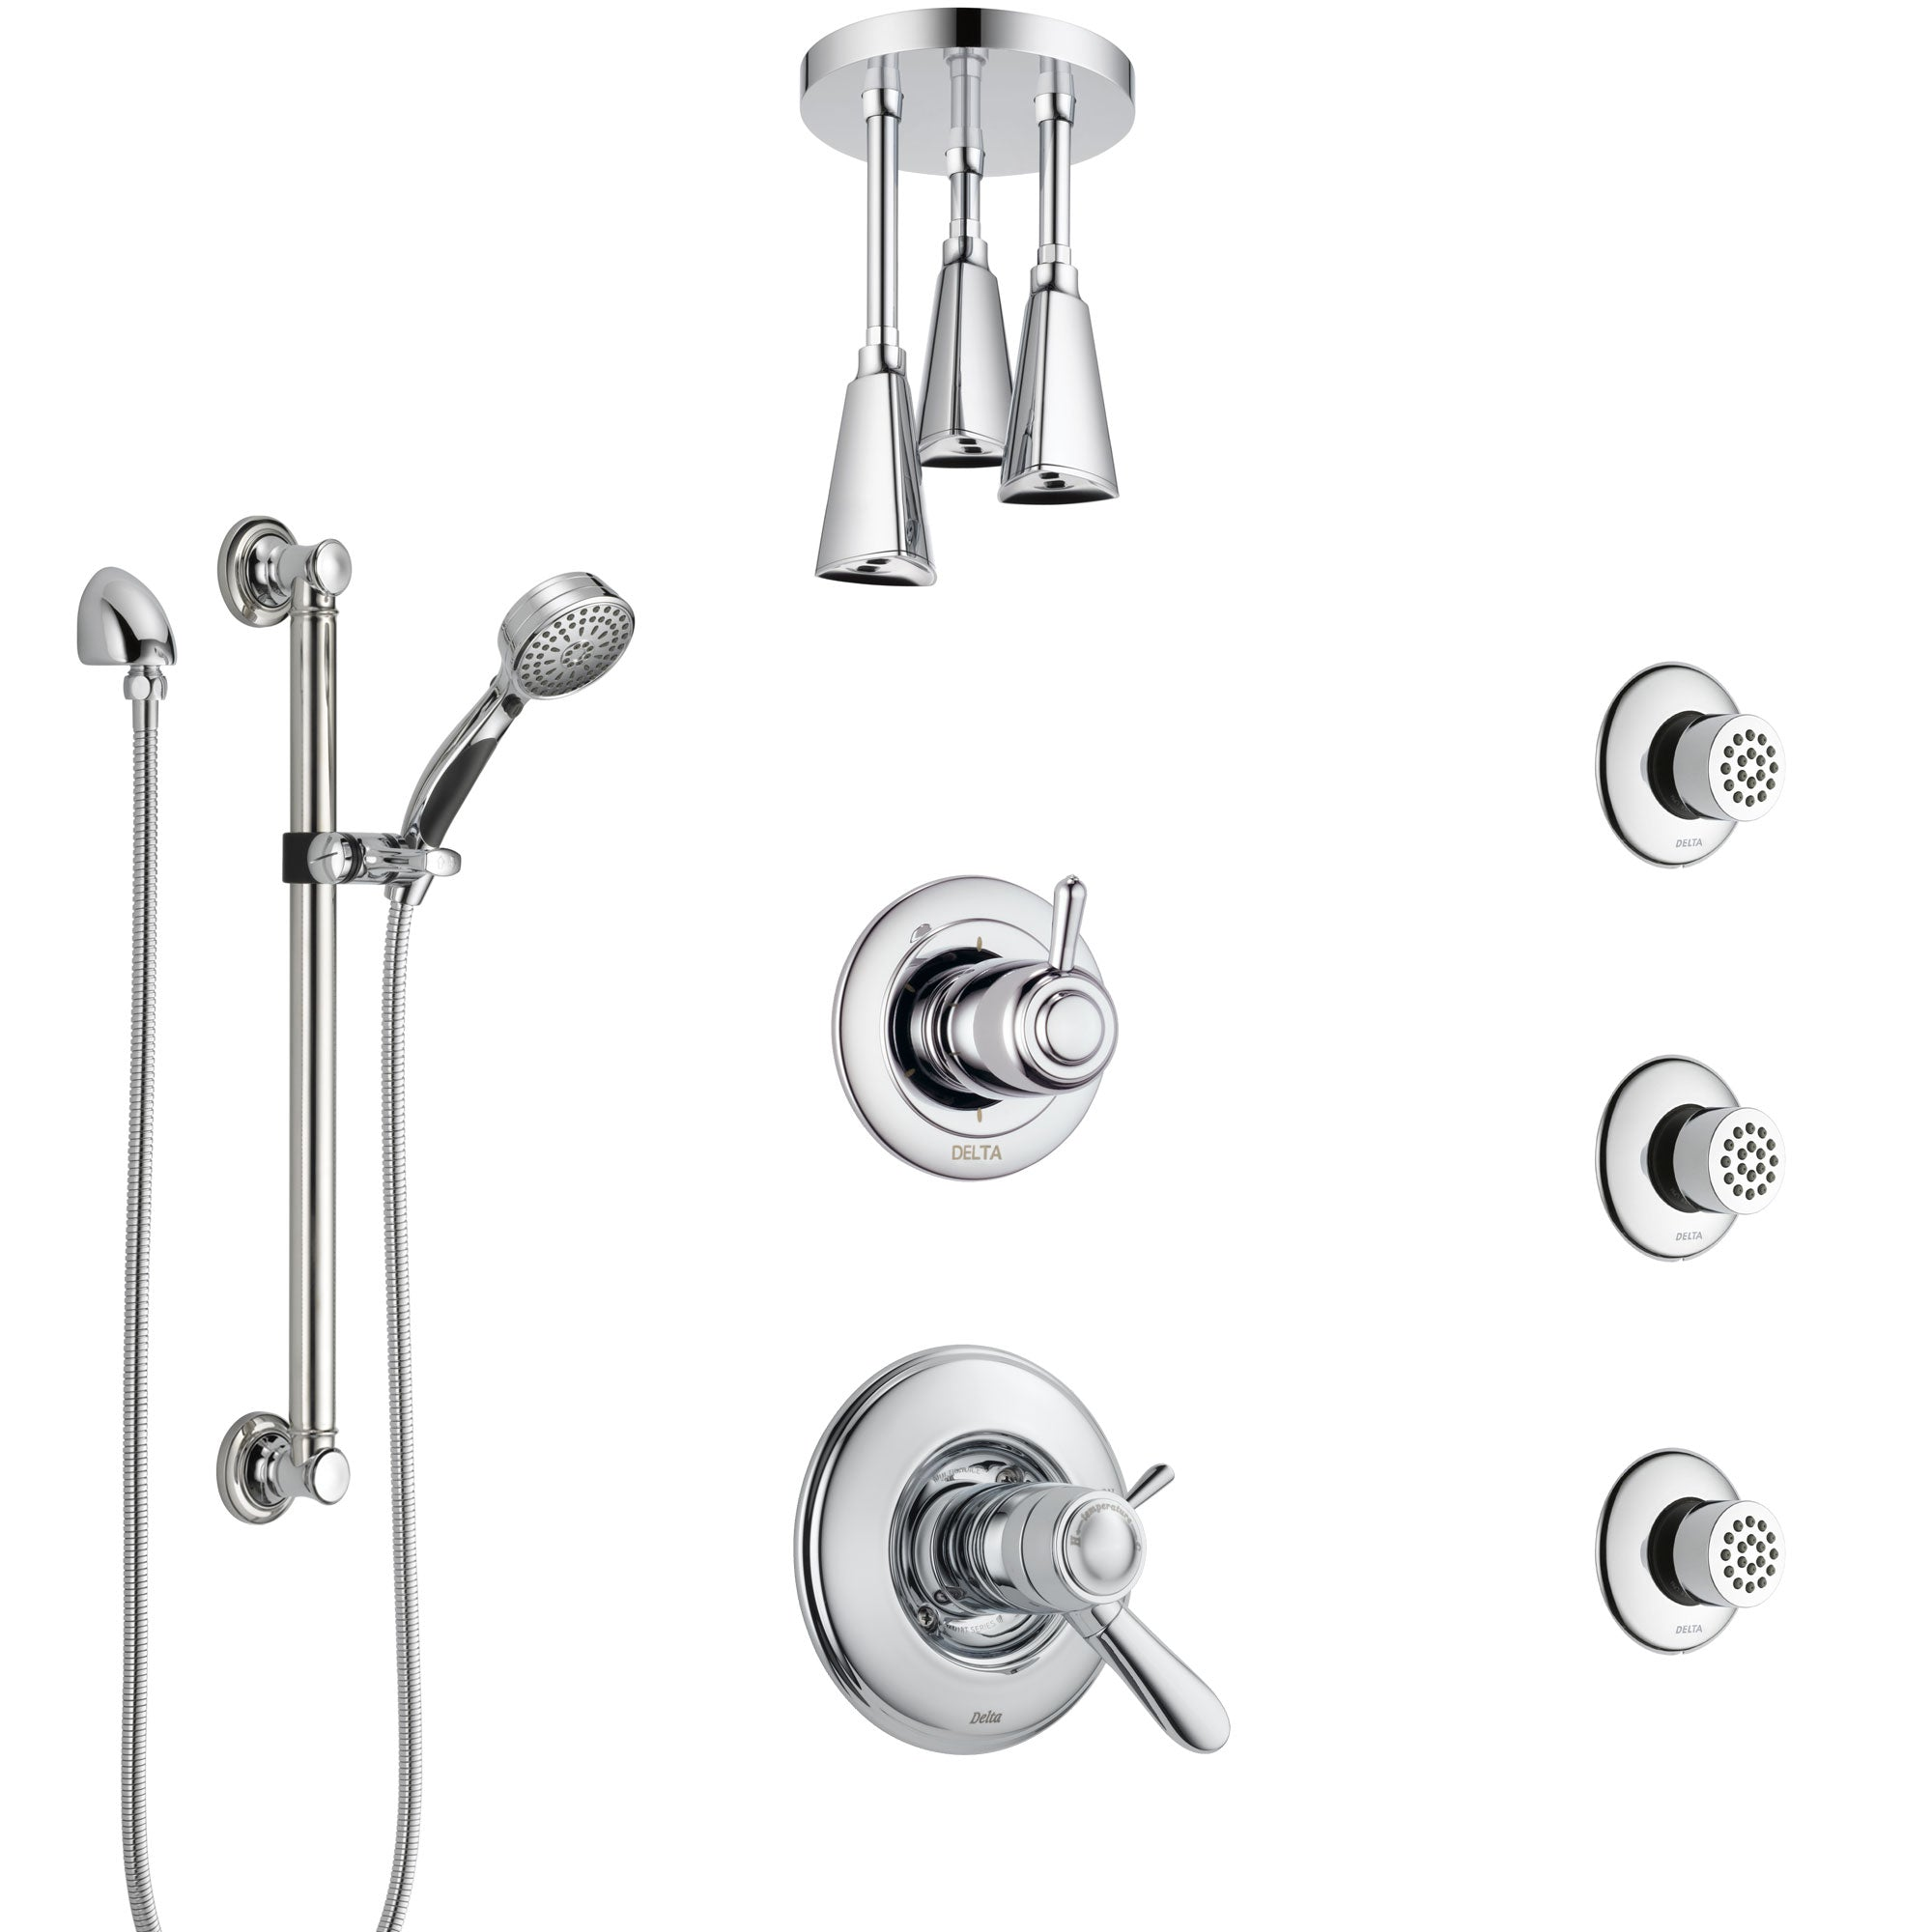 Delta Lahara Chrome Shower System with Dual Thermostatic Control, Diverter, Ceiling Showerhead, 3 Body Sprays, and Grab Bar Hand Shower SS17T3822